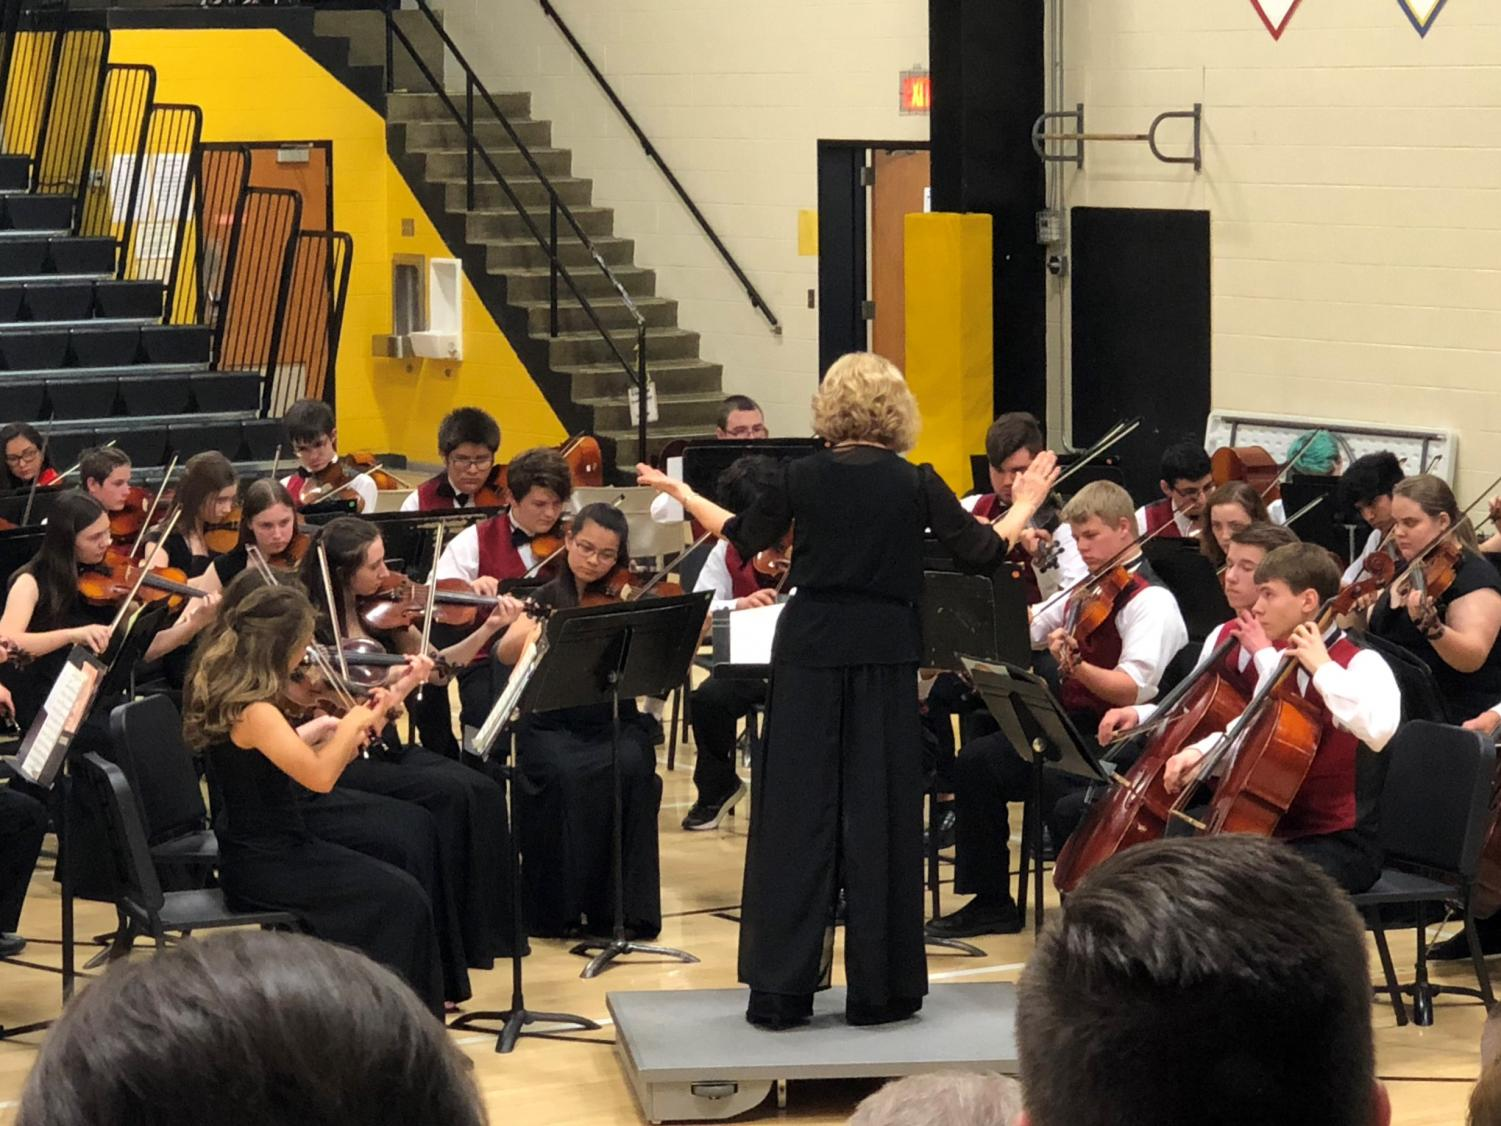 Orchestra students from across USD 489 performed in the All City Strings Concert. It was held in the Hays Middle School gym on April 26.